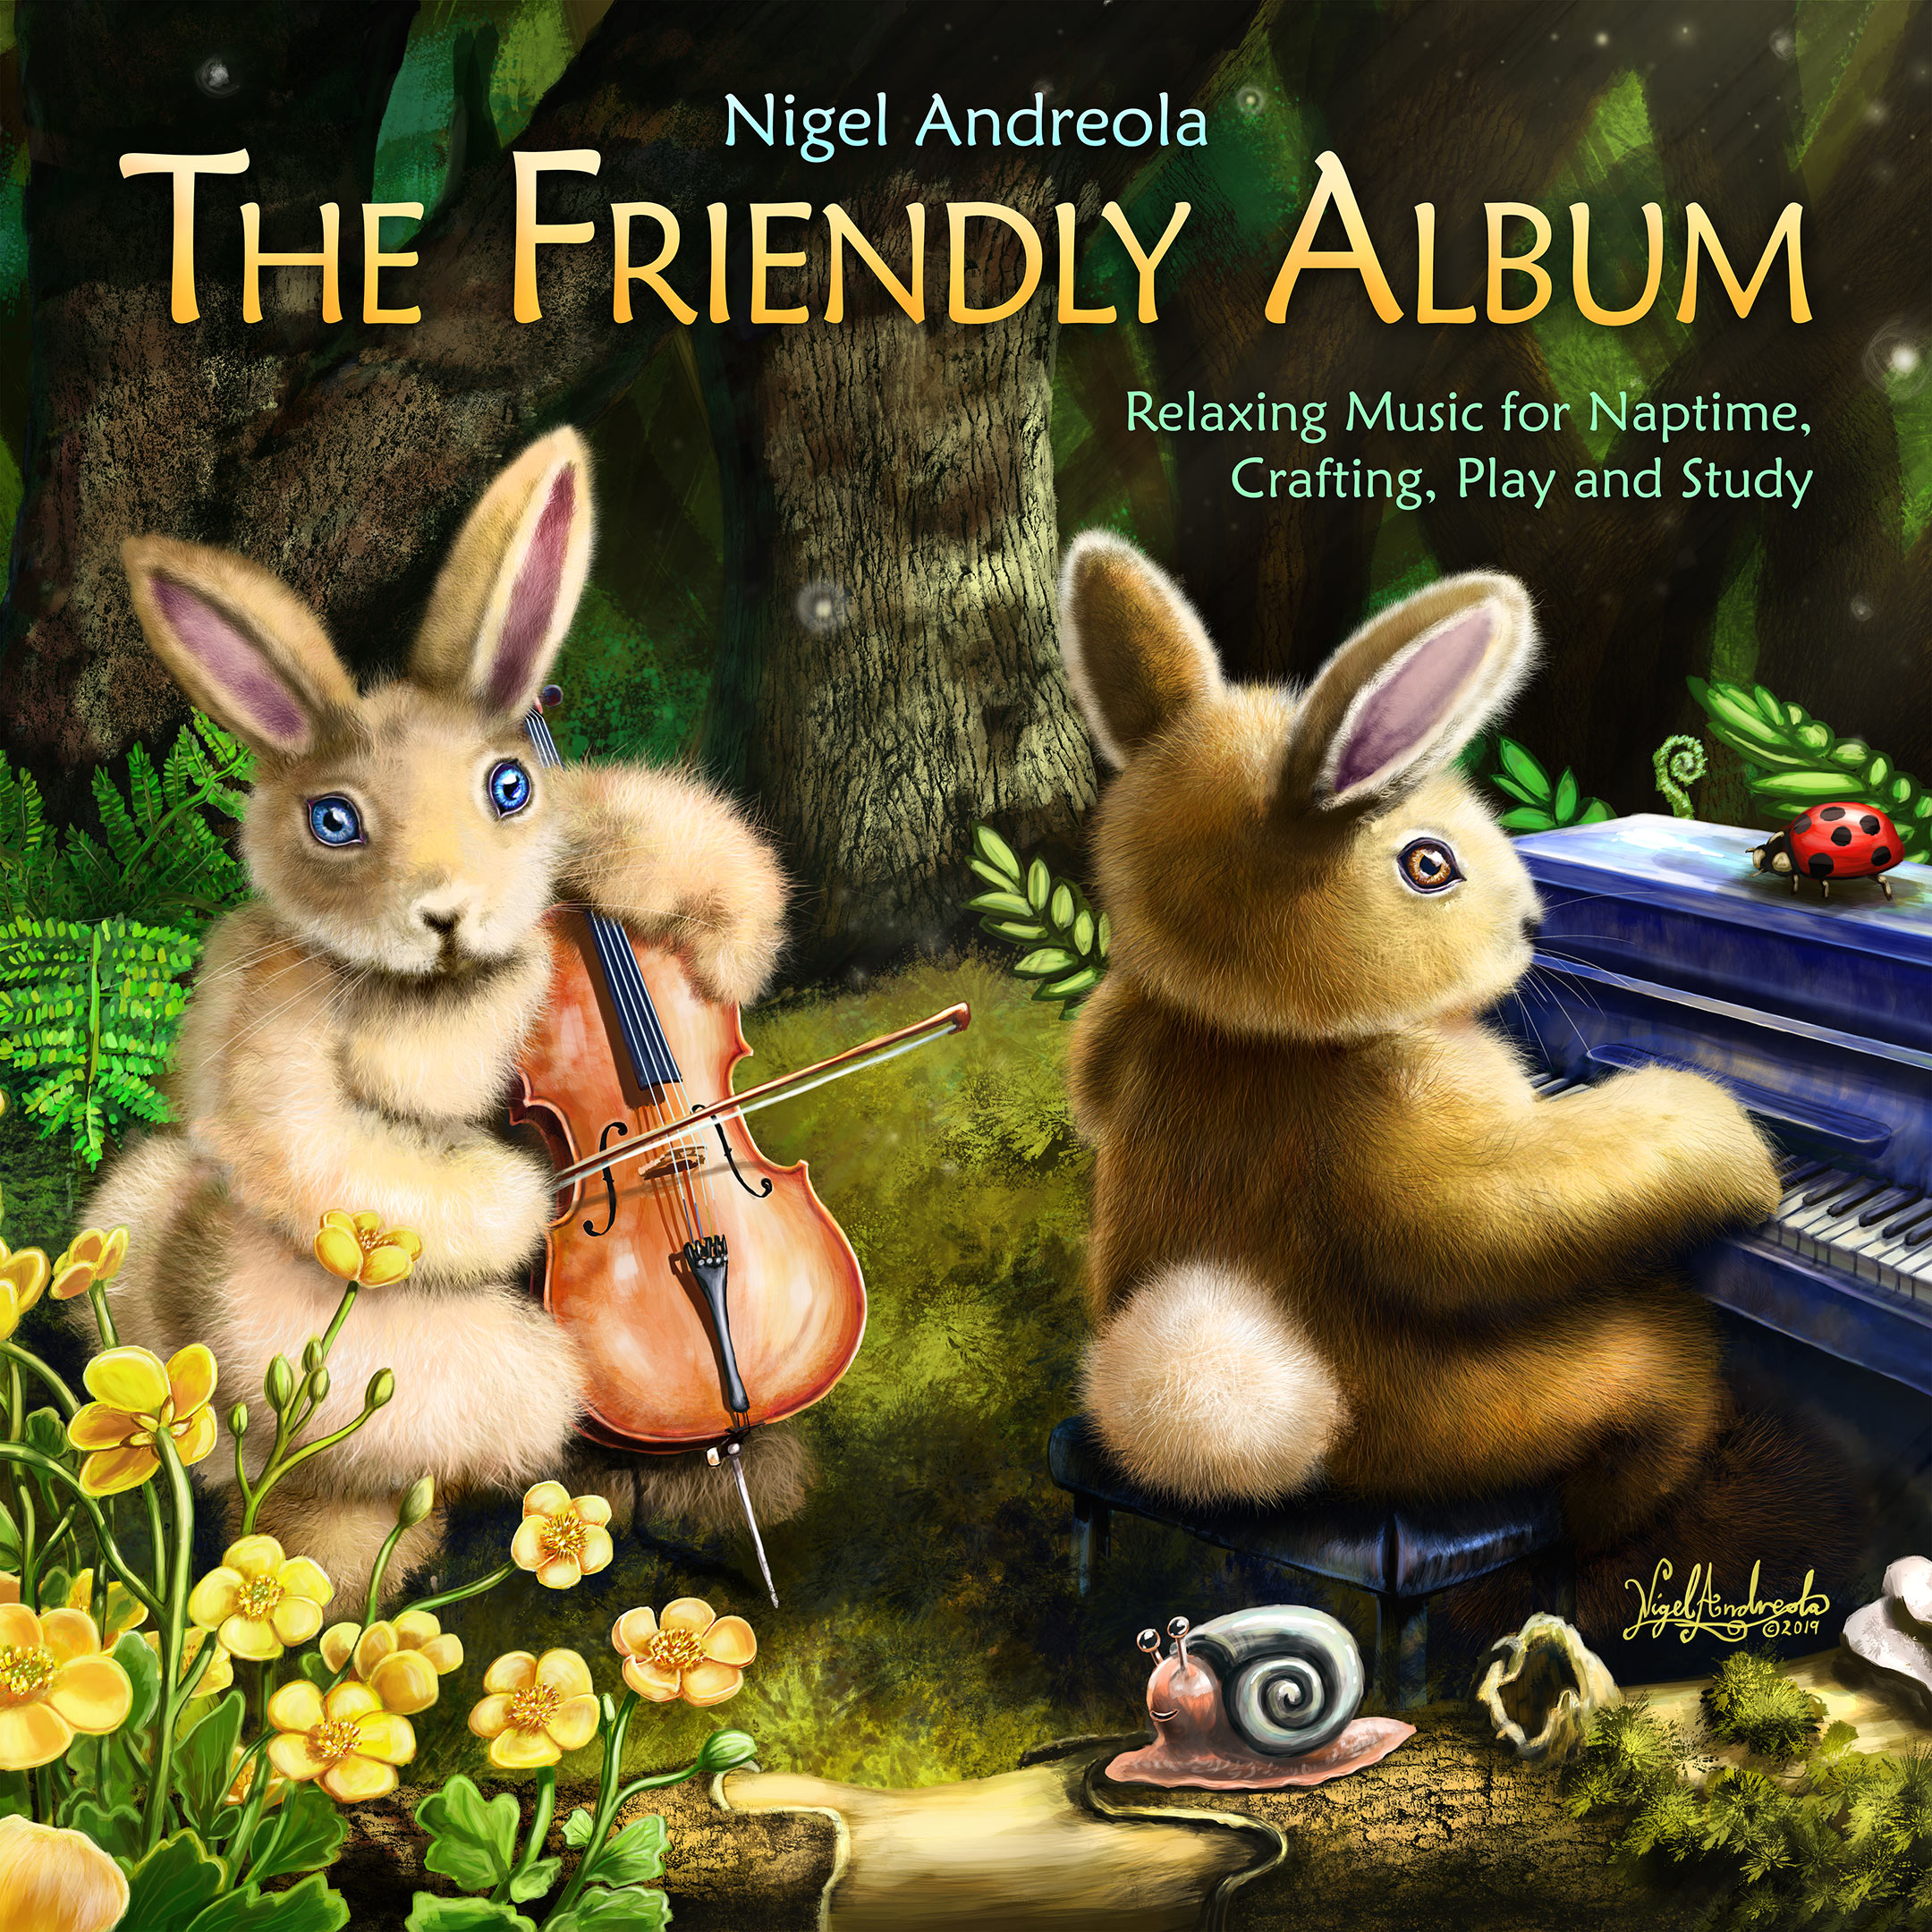 The Friendly Album Relaxing music for naptime and study By Nigel Andreola